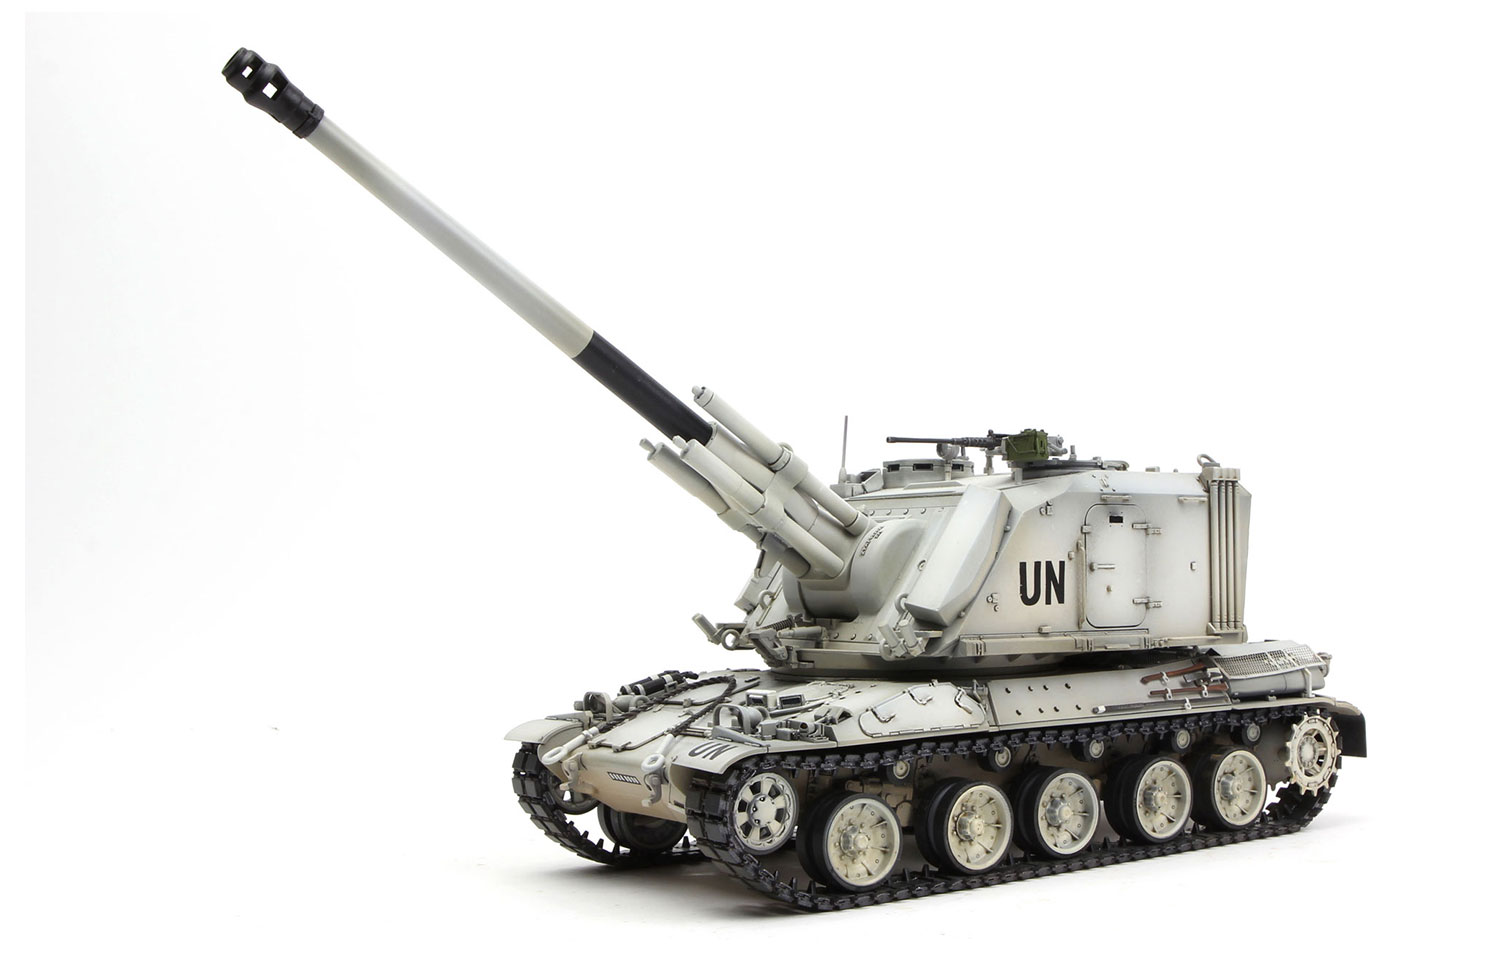 Meng 1/35 French Auf1 TA 155mm Self-Propelled Howitzer